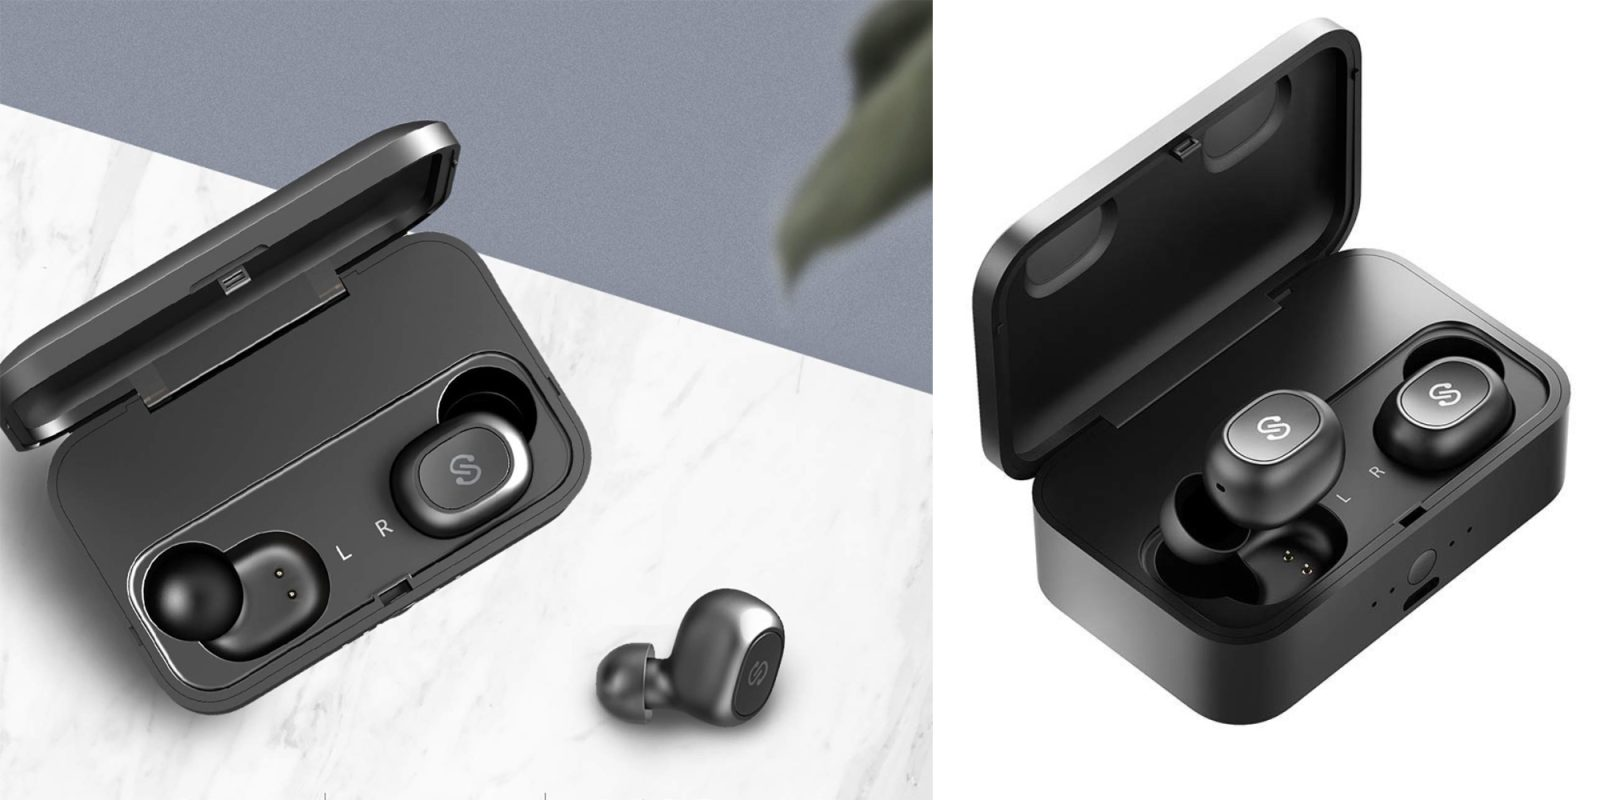 Smartphone Accessories: SoundPEATS True Wireless Earbuds $32 (30% off), more